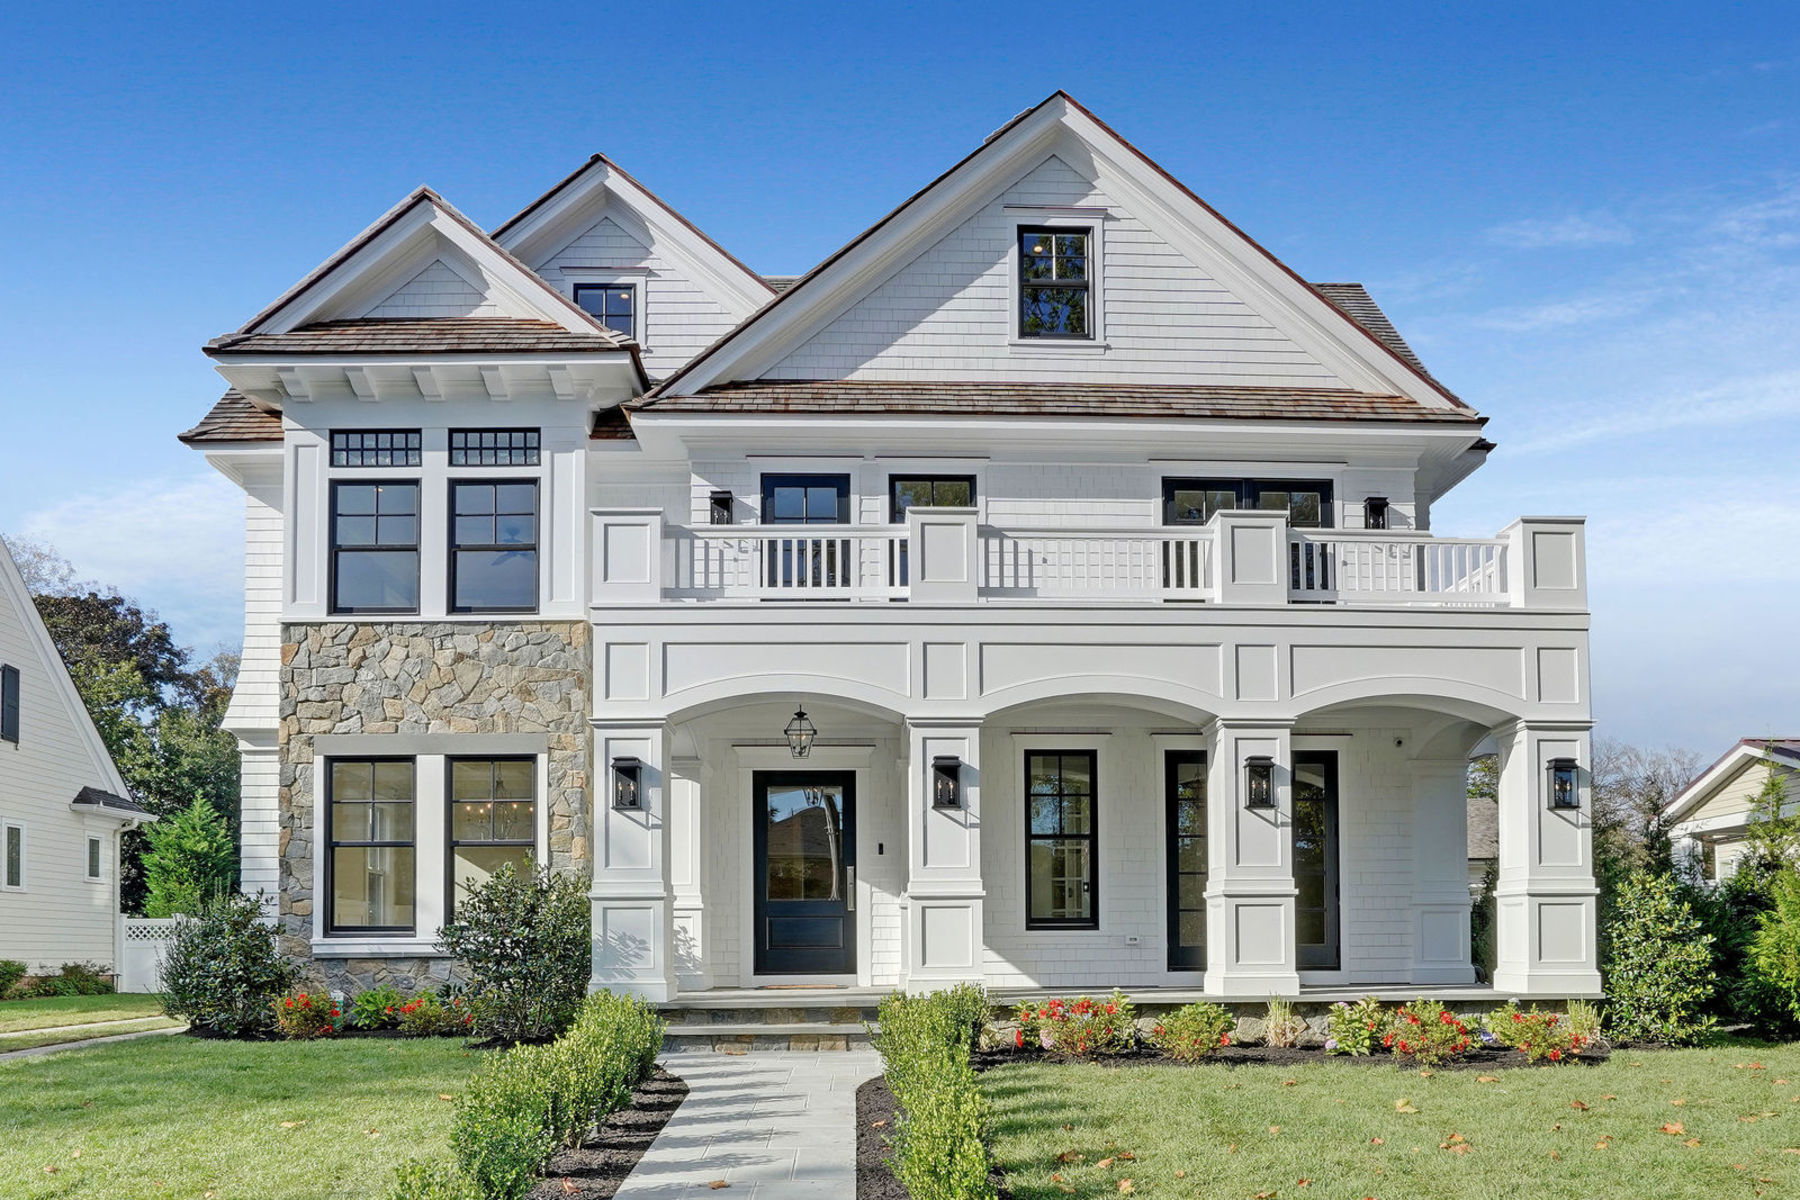 Single Family Home for Sale at Spring Lake New Construction 26 Vroom Avenue, Spring Lake, New Jersey 07762 United States